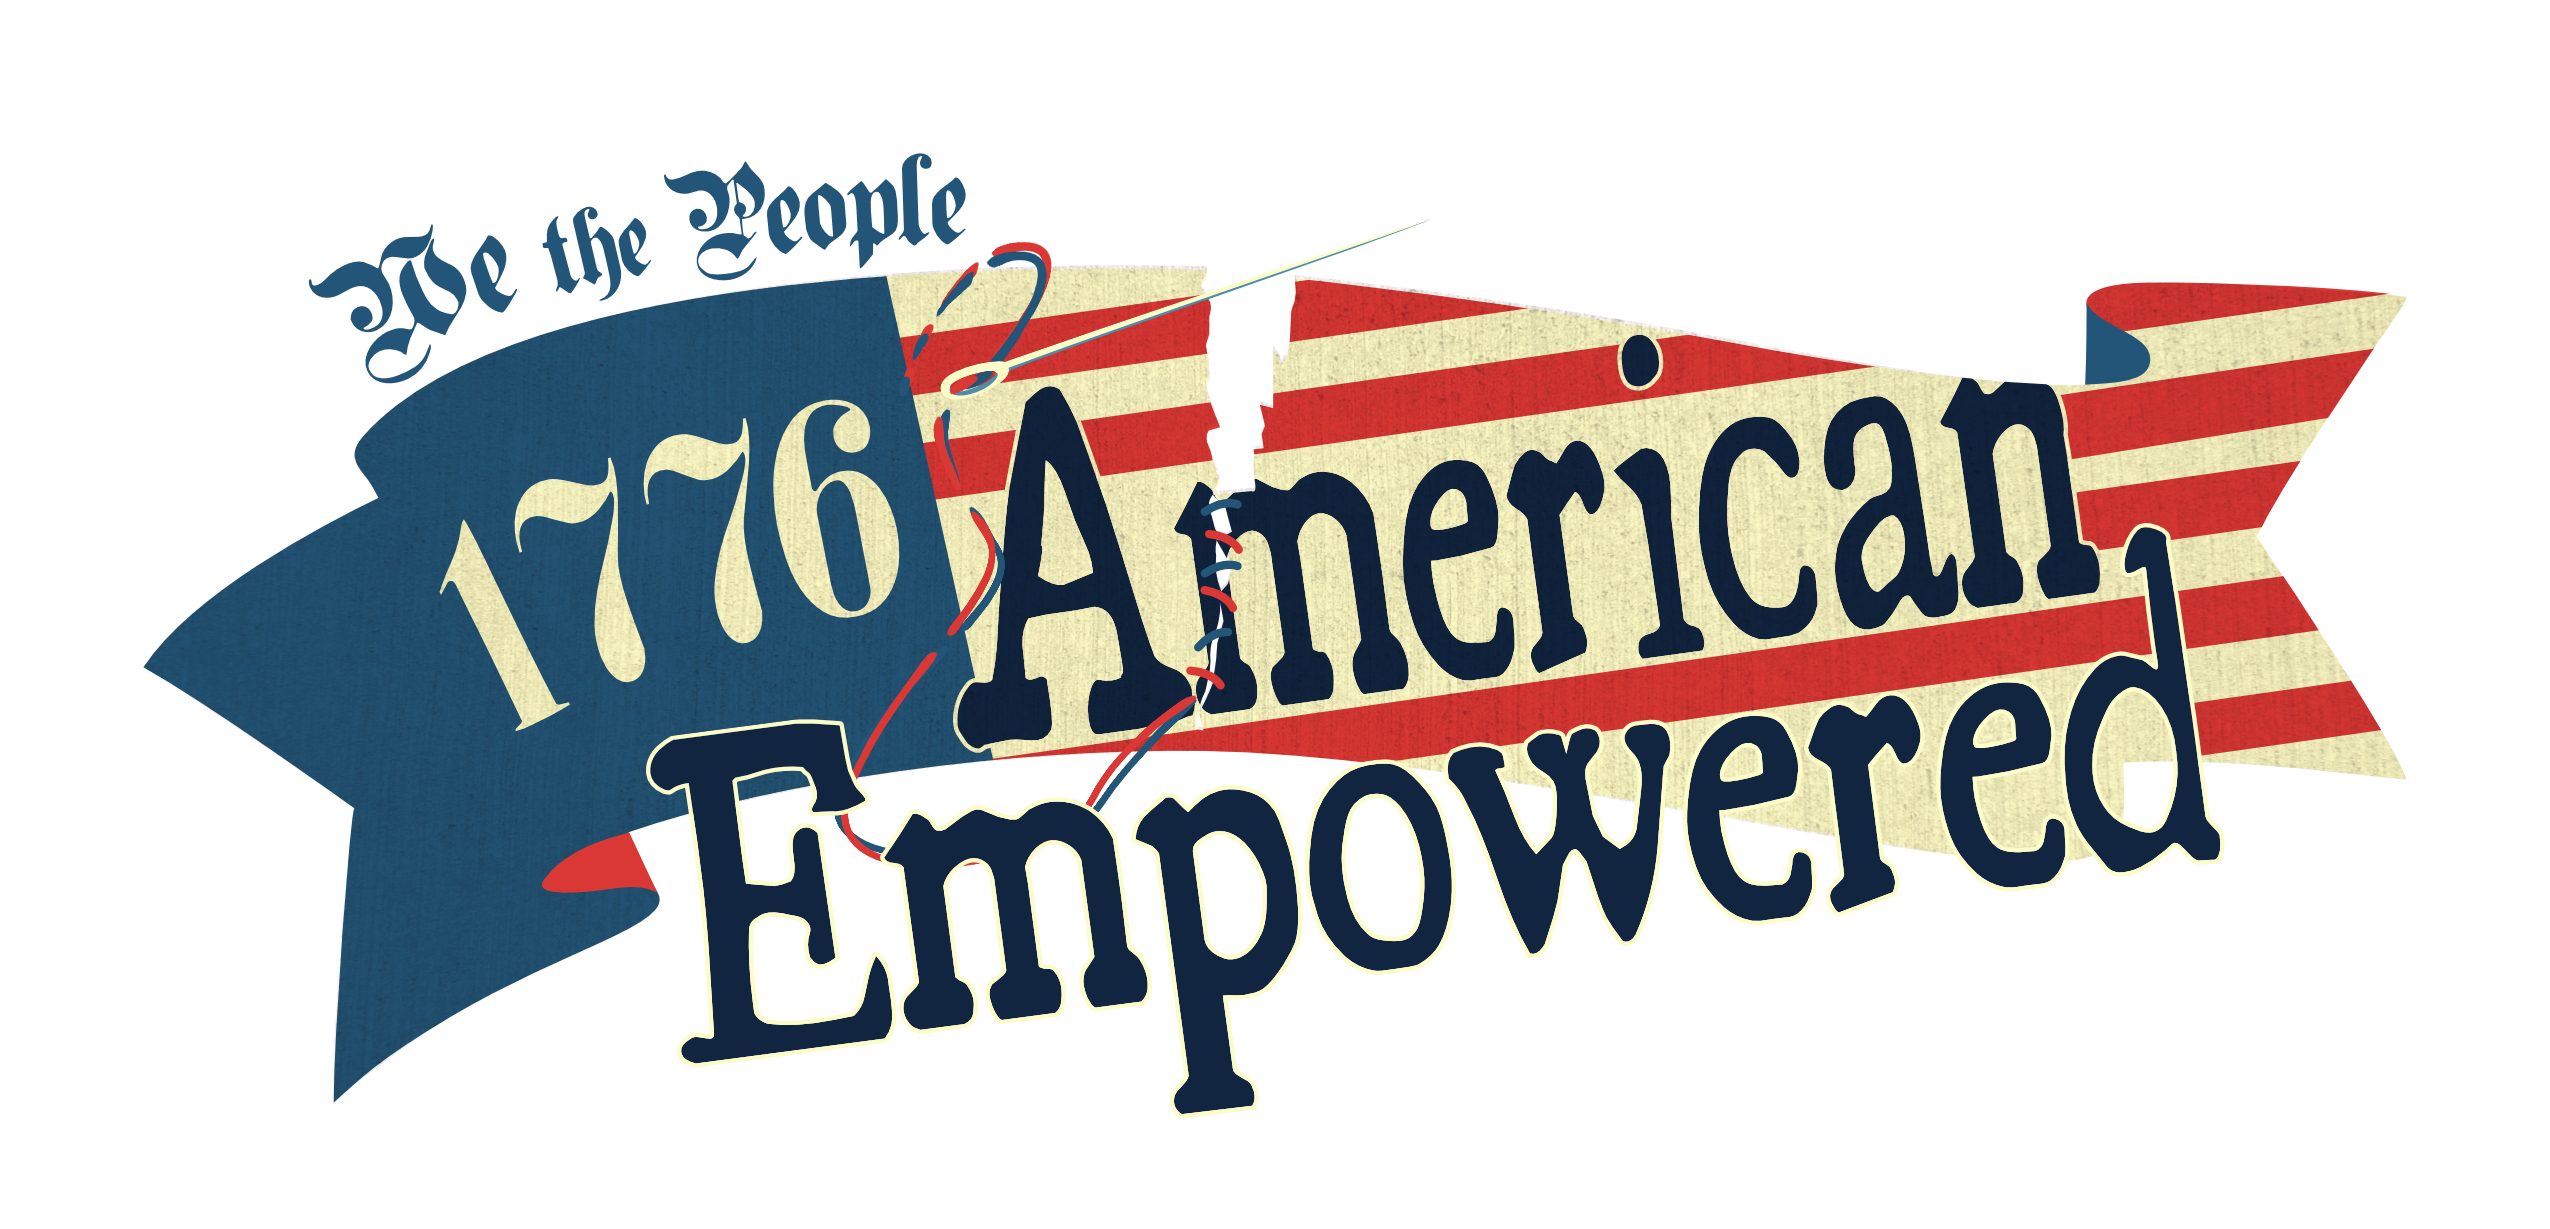 1776 American Empowered